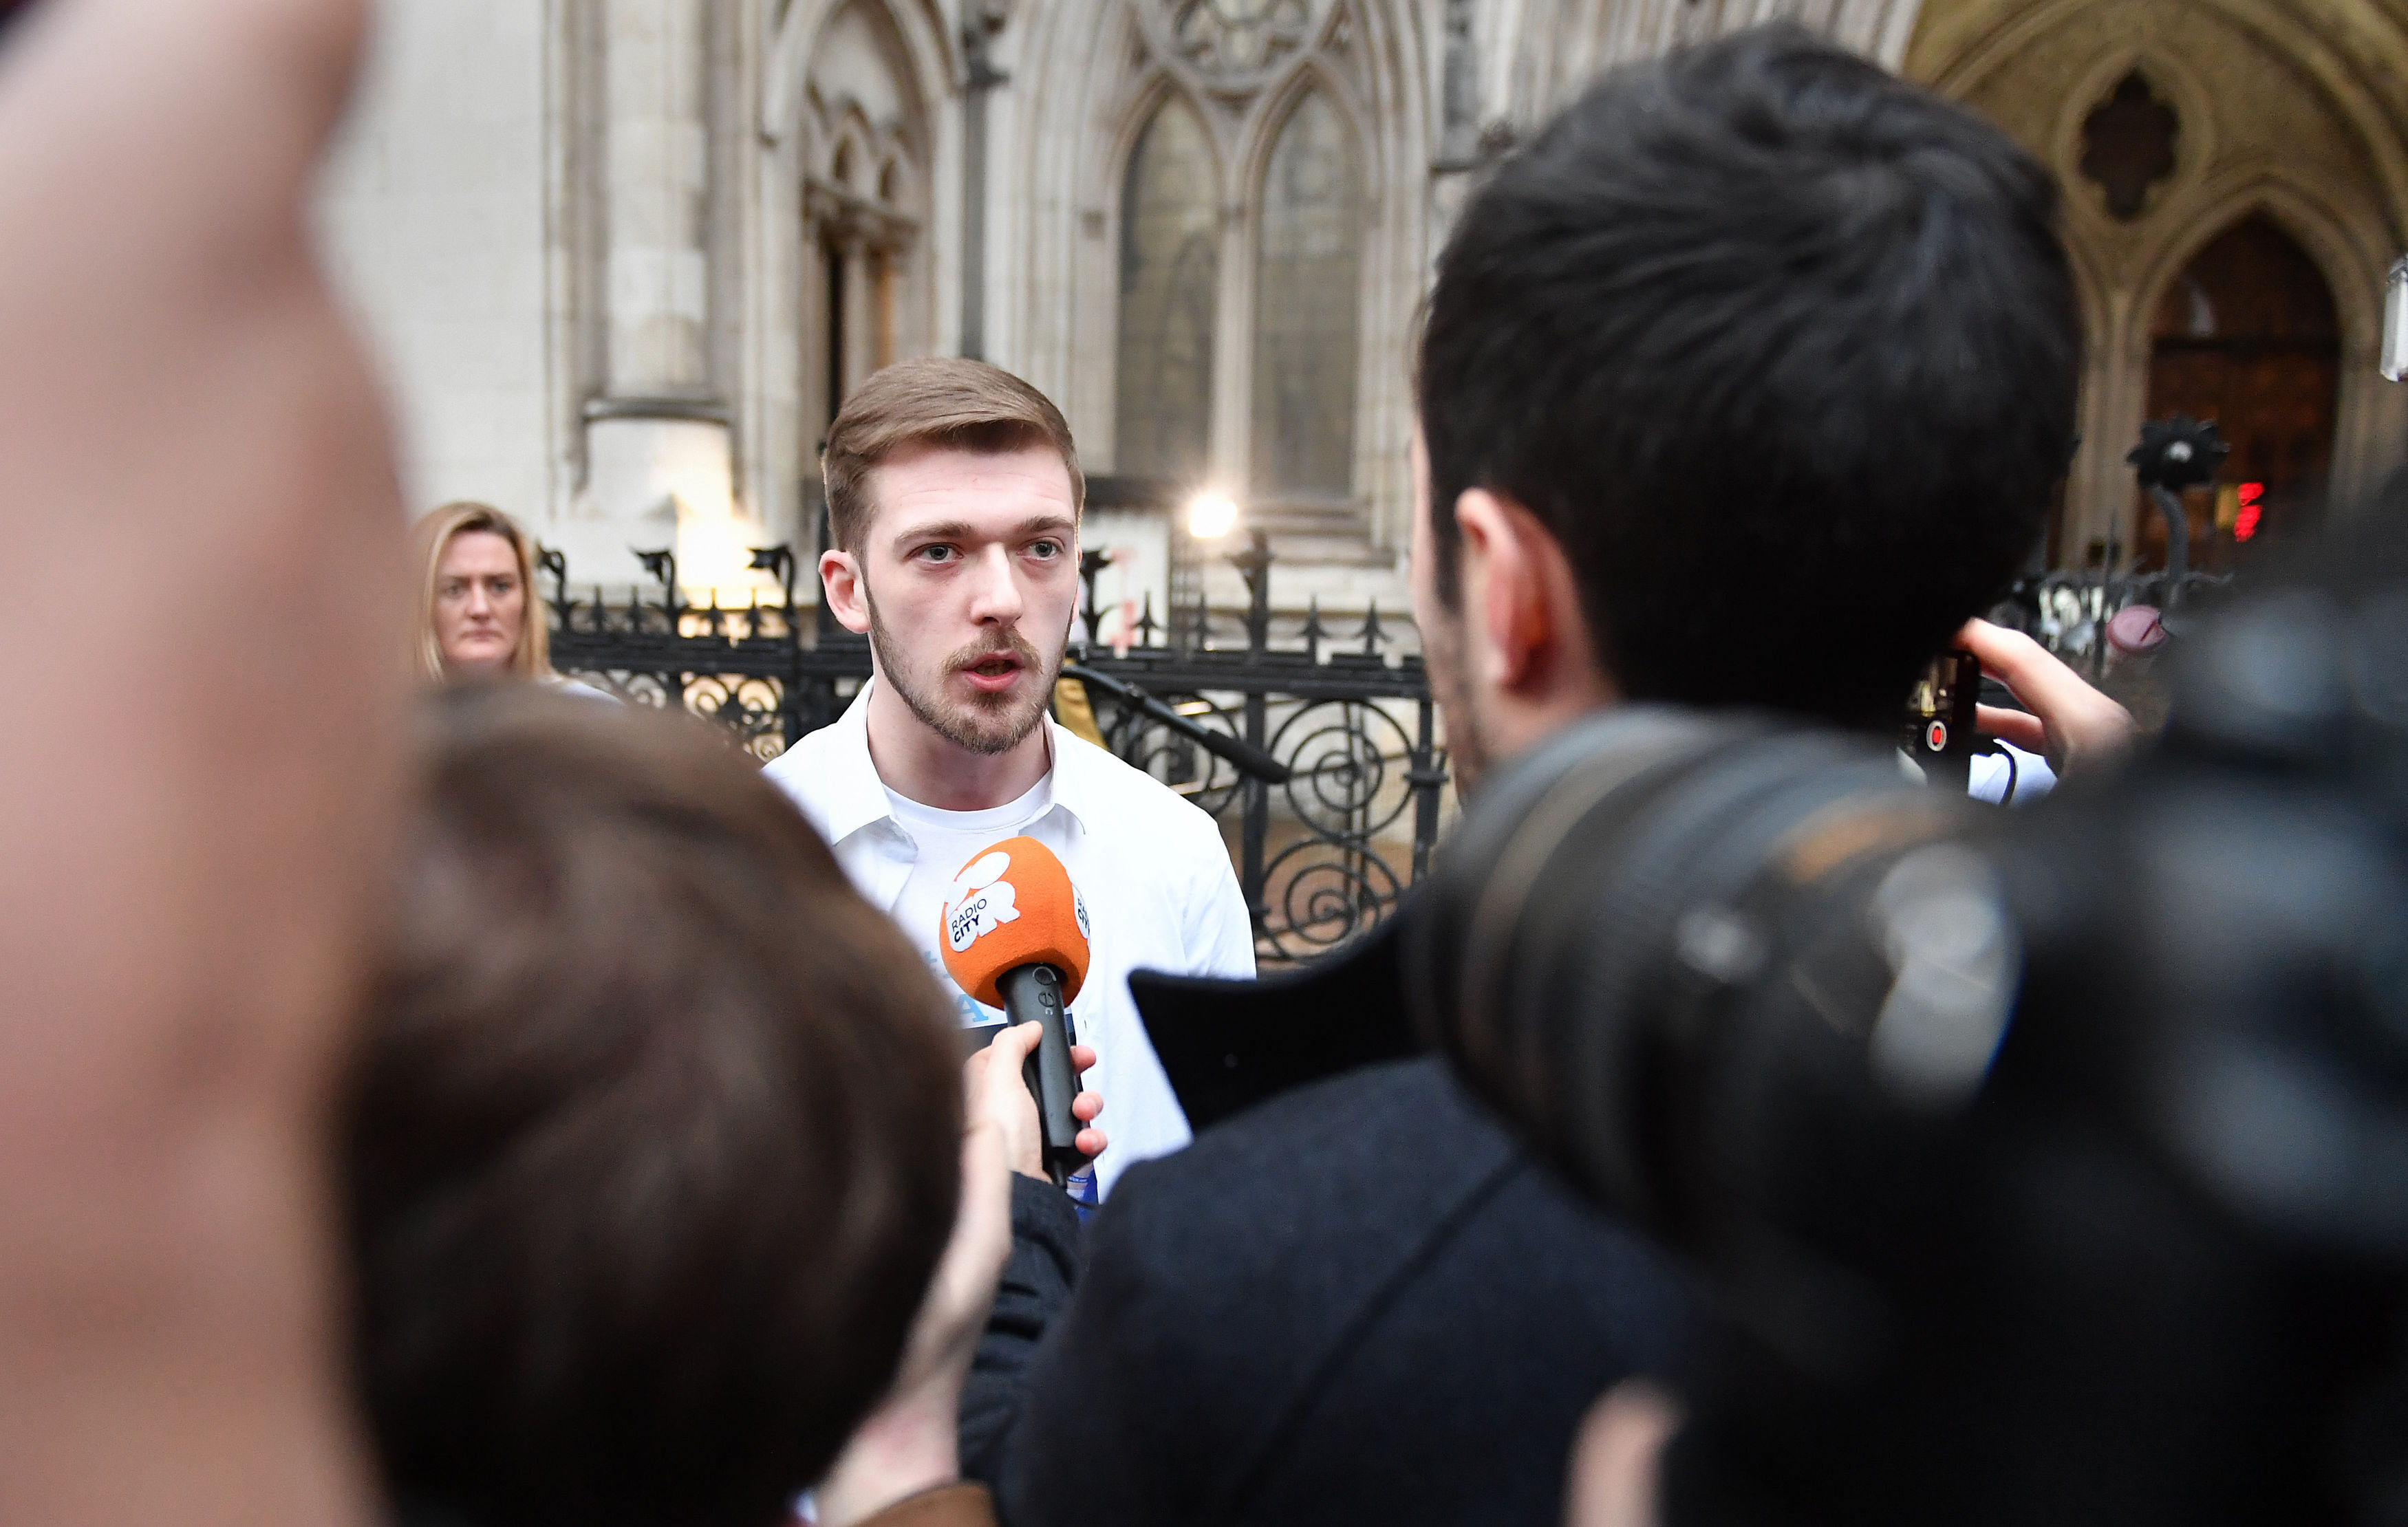 Parents of Alfie Evans launch new appeal